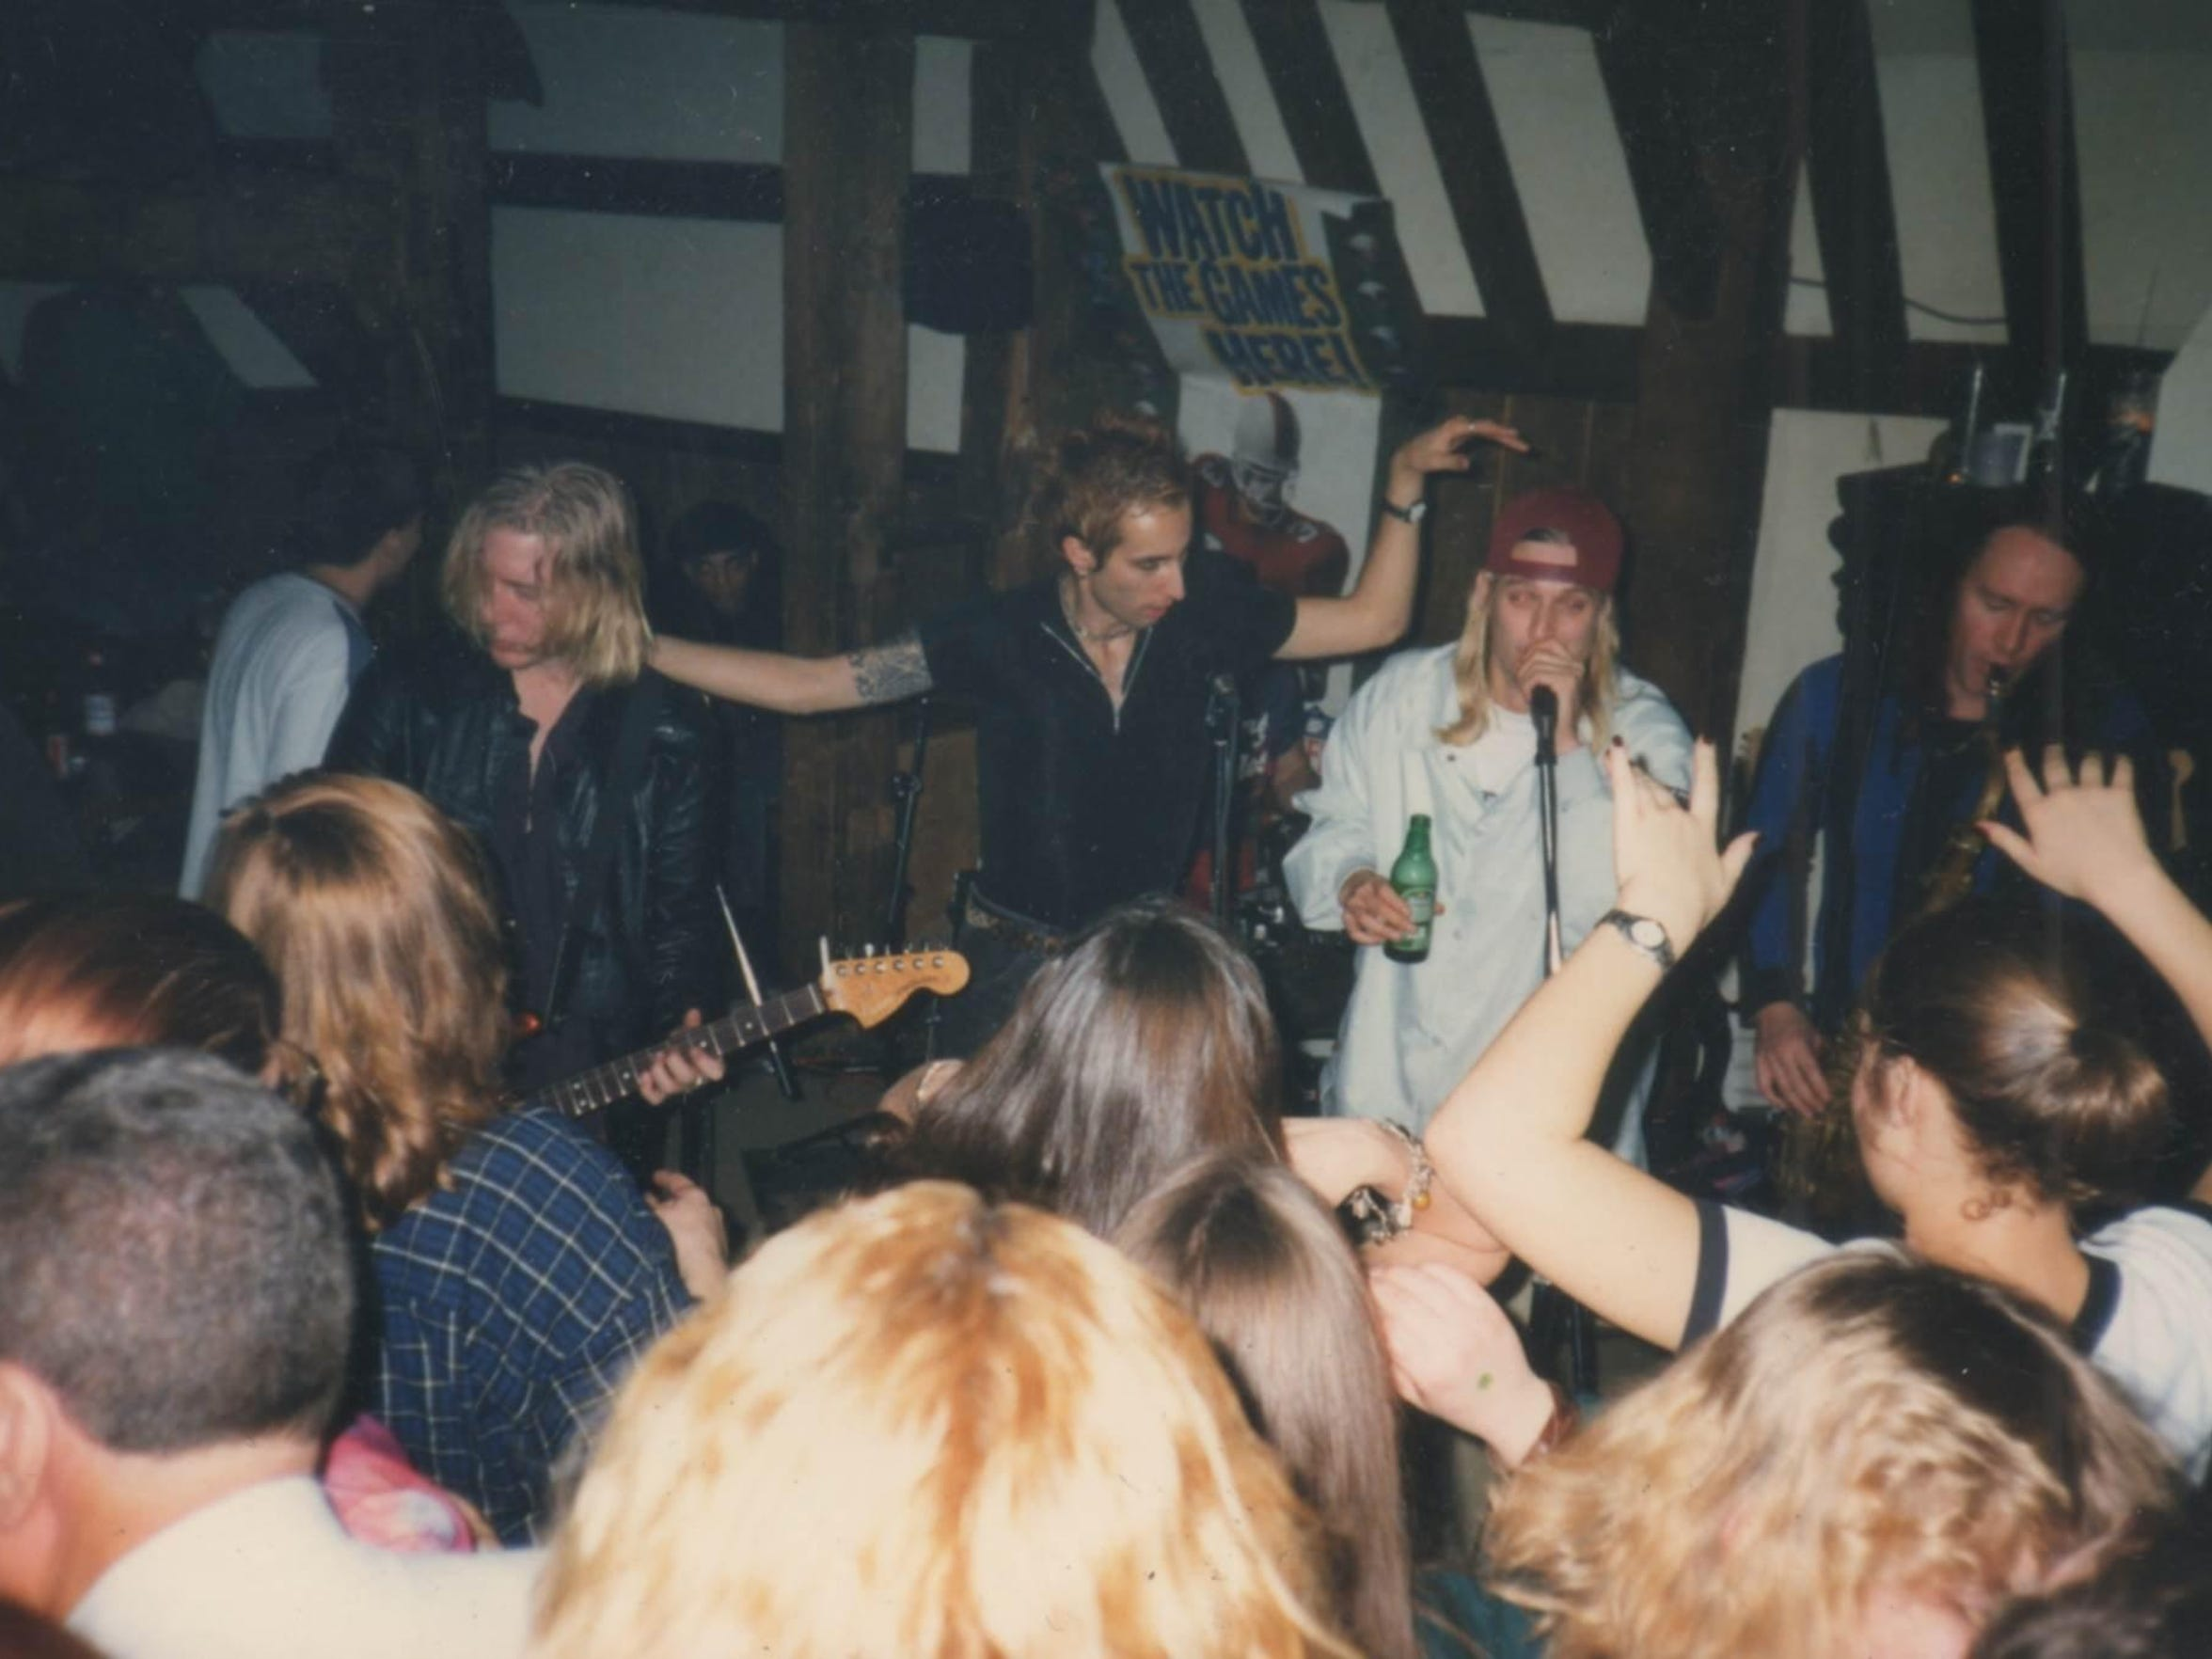 Jam sessions in the mid-'90s at the Bear's Den in Berkley